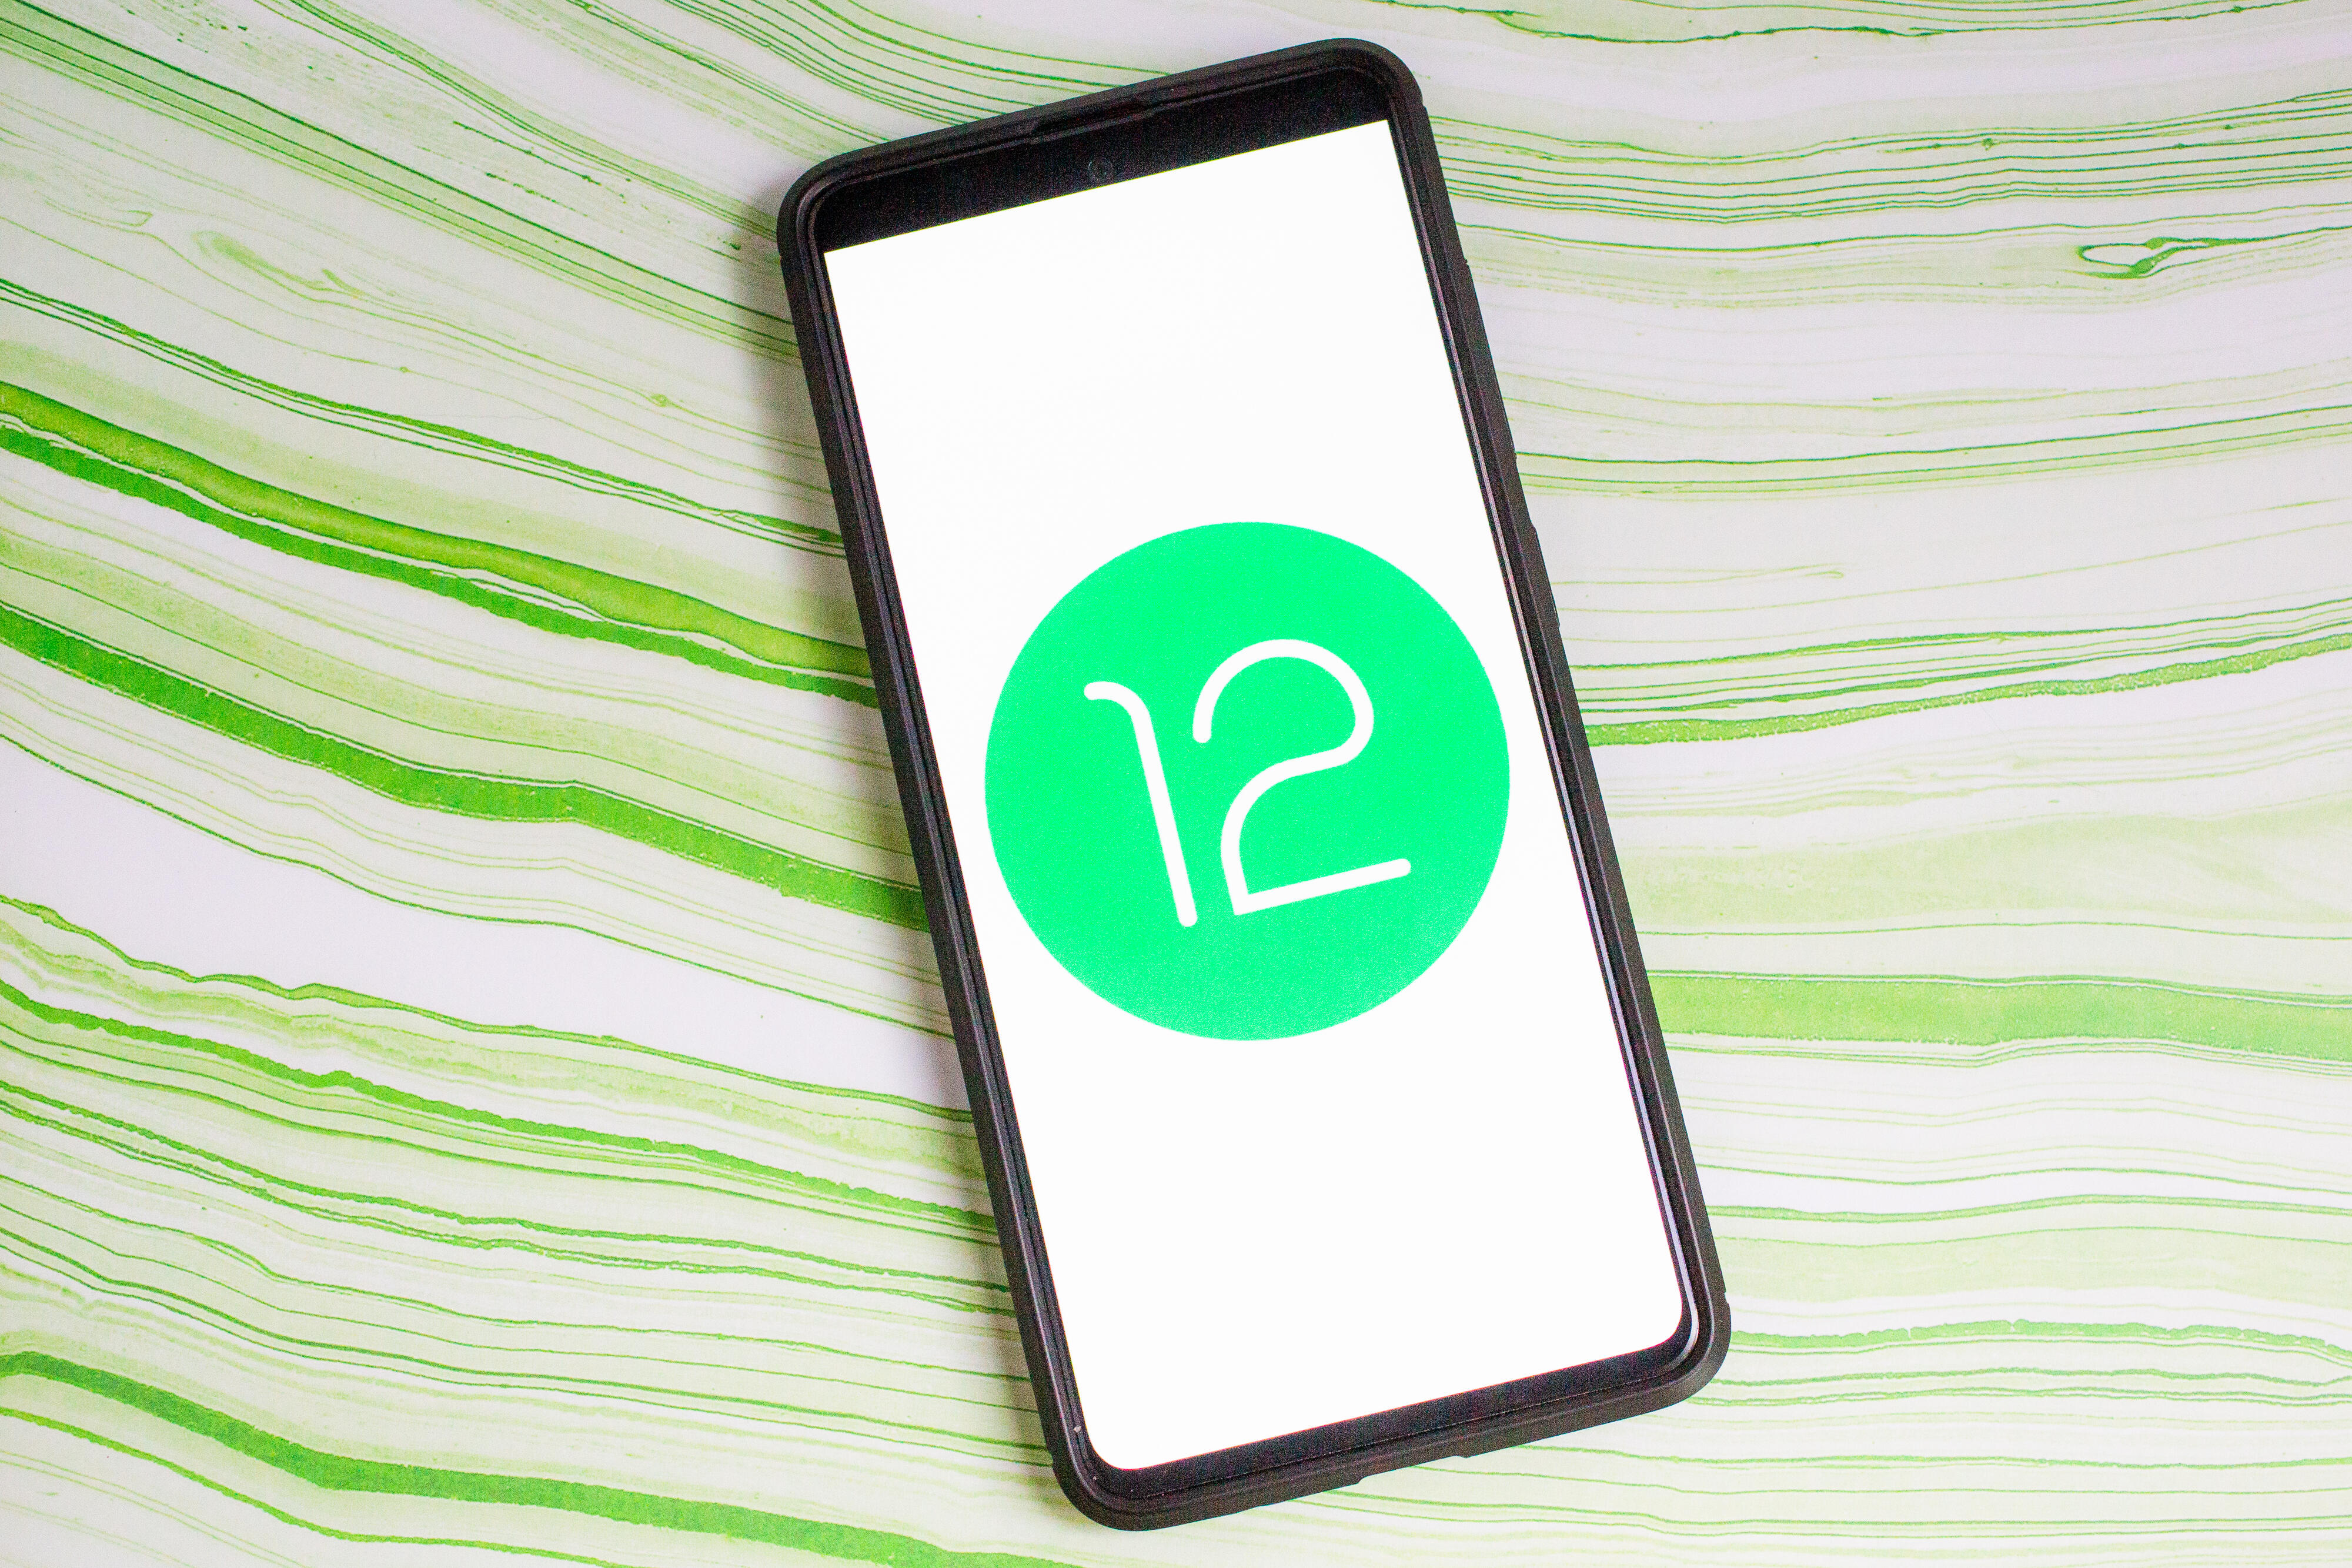 android-12-cnet-2021-002